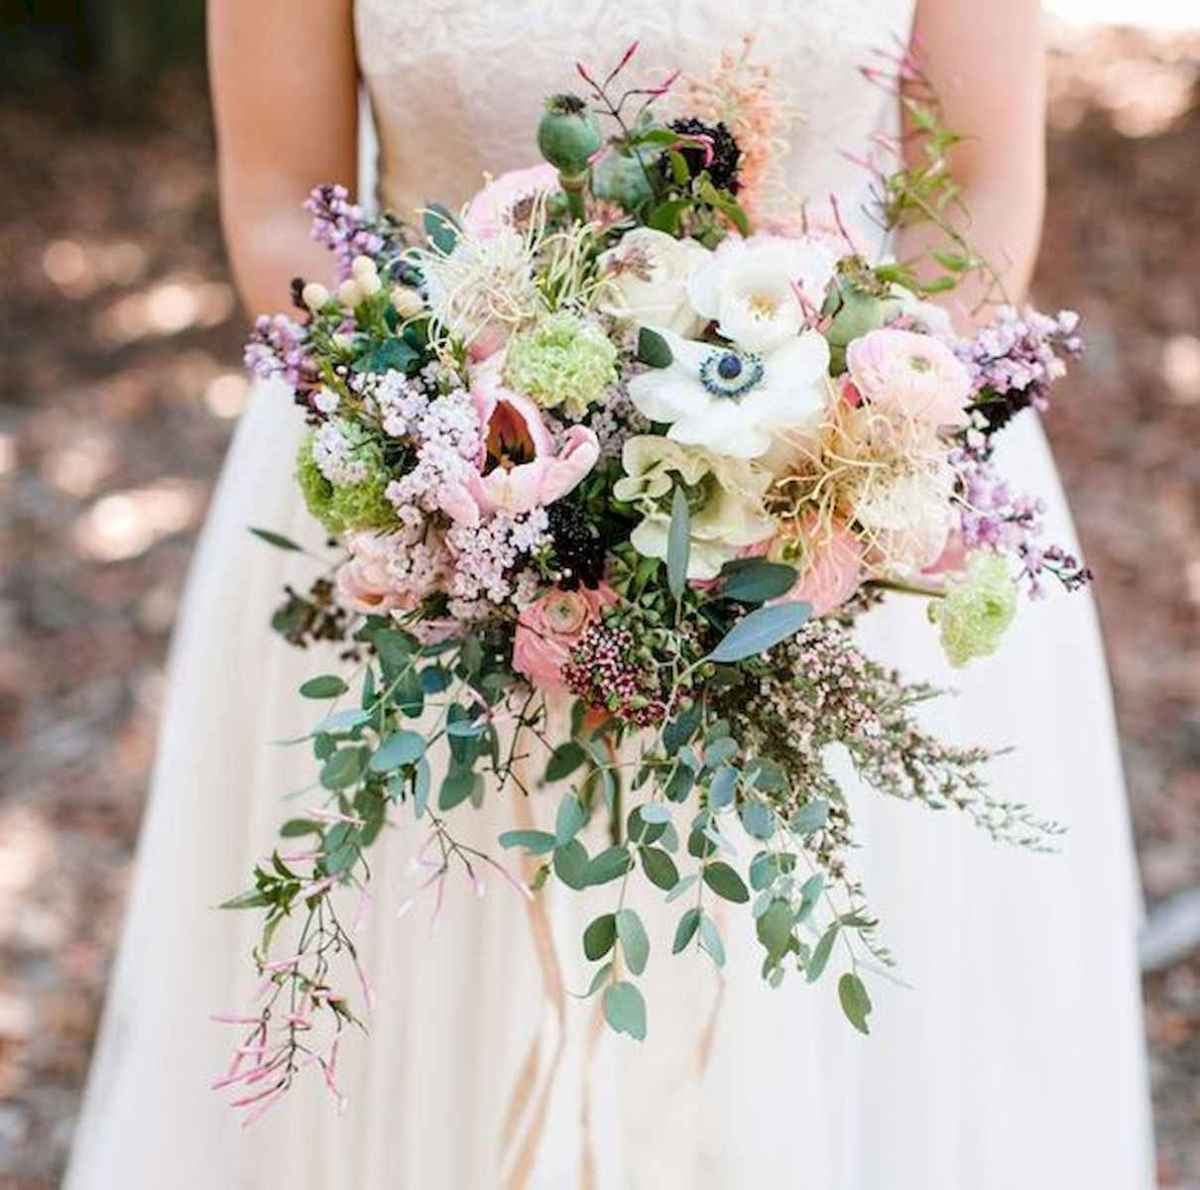 50 Beautiful Spring Bridesmaid Bouquets for Wedding Ideas (43)